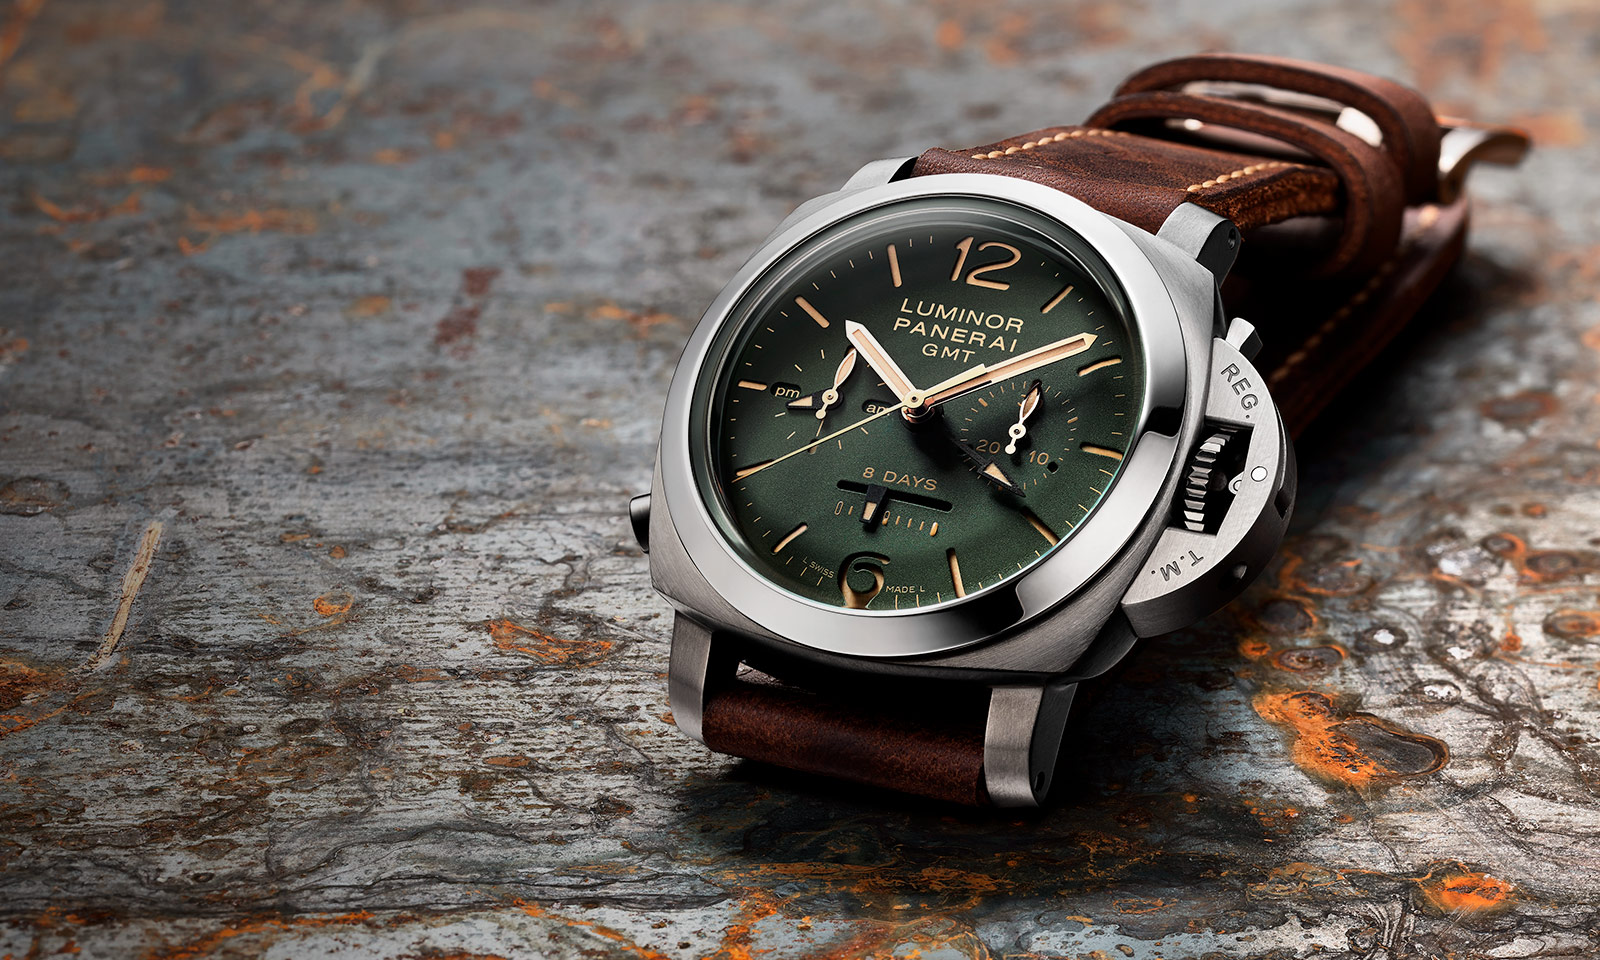 Panerai-Luminor-1950-Chrono-PAM00737-Green-Dial-3.jpg